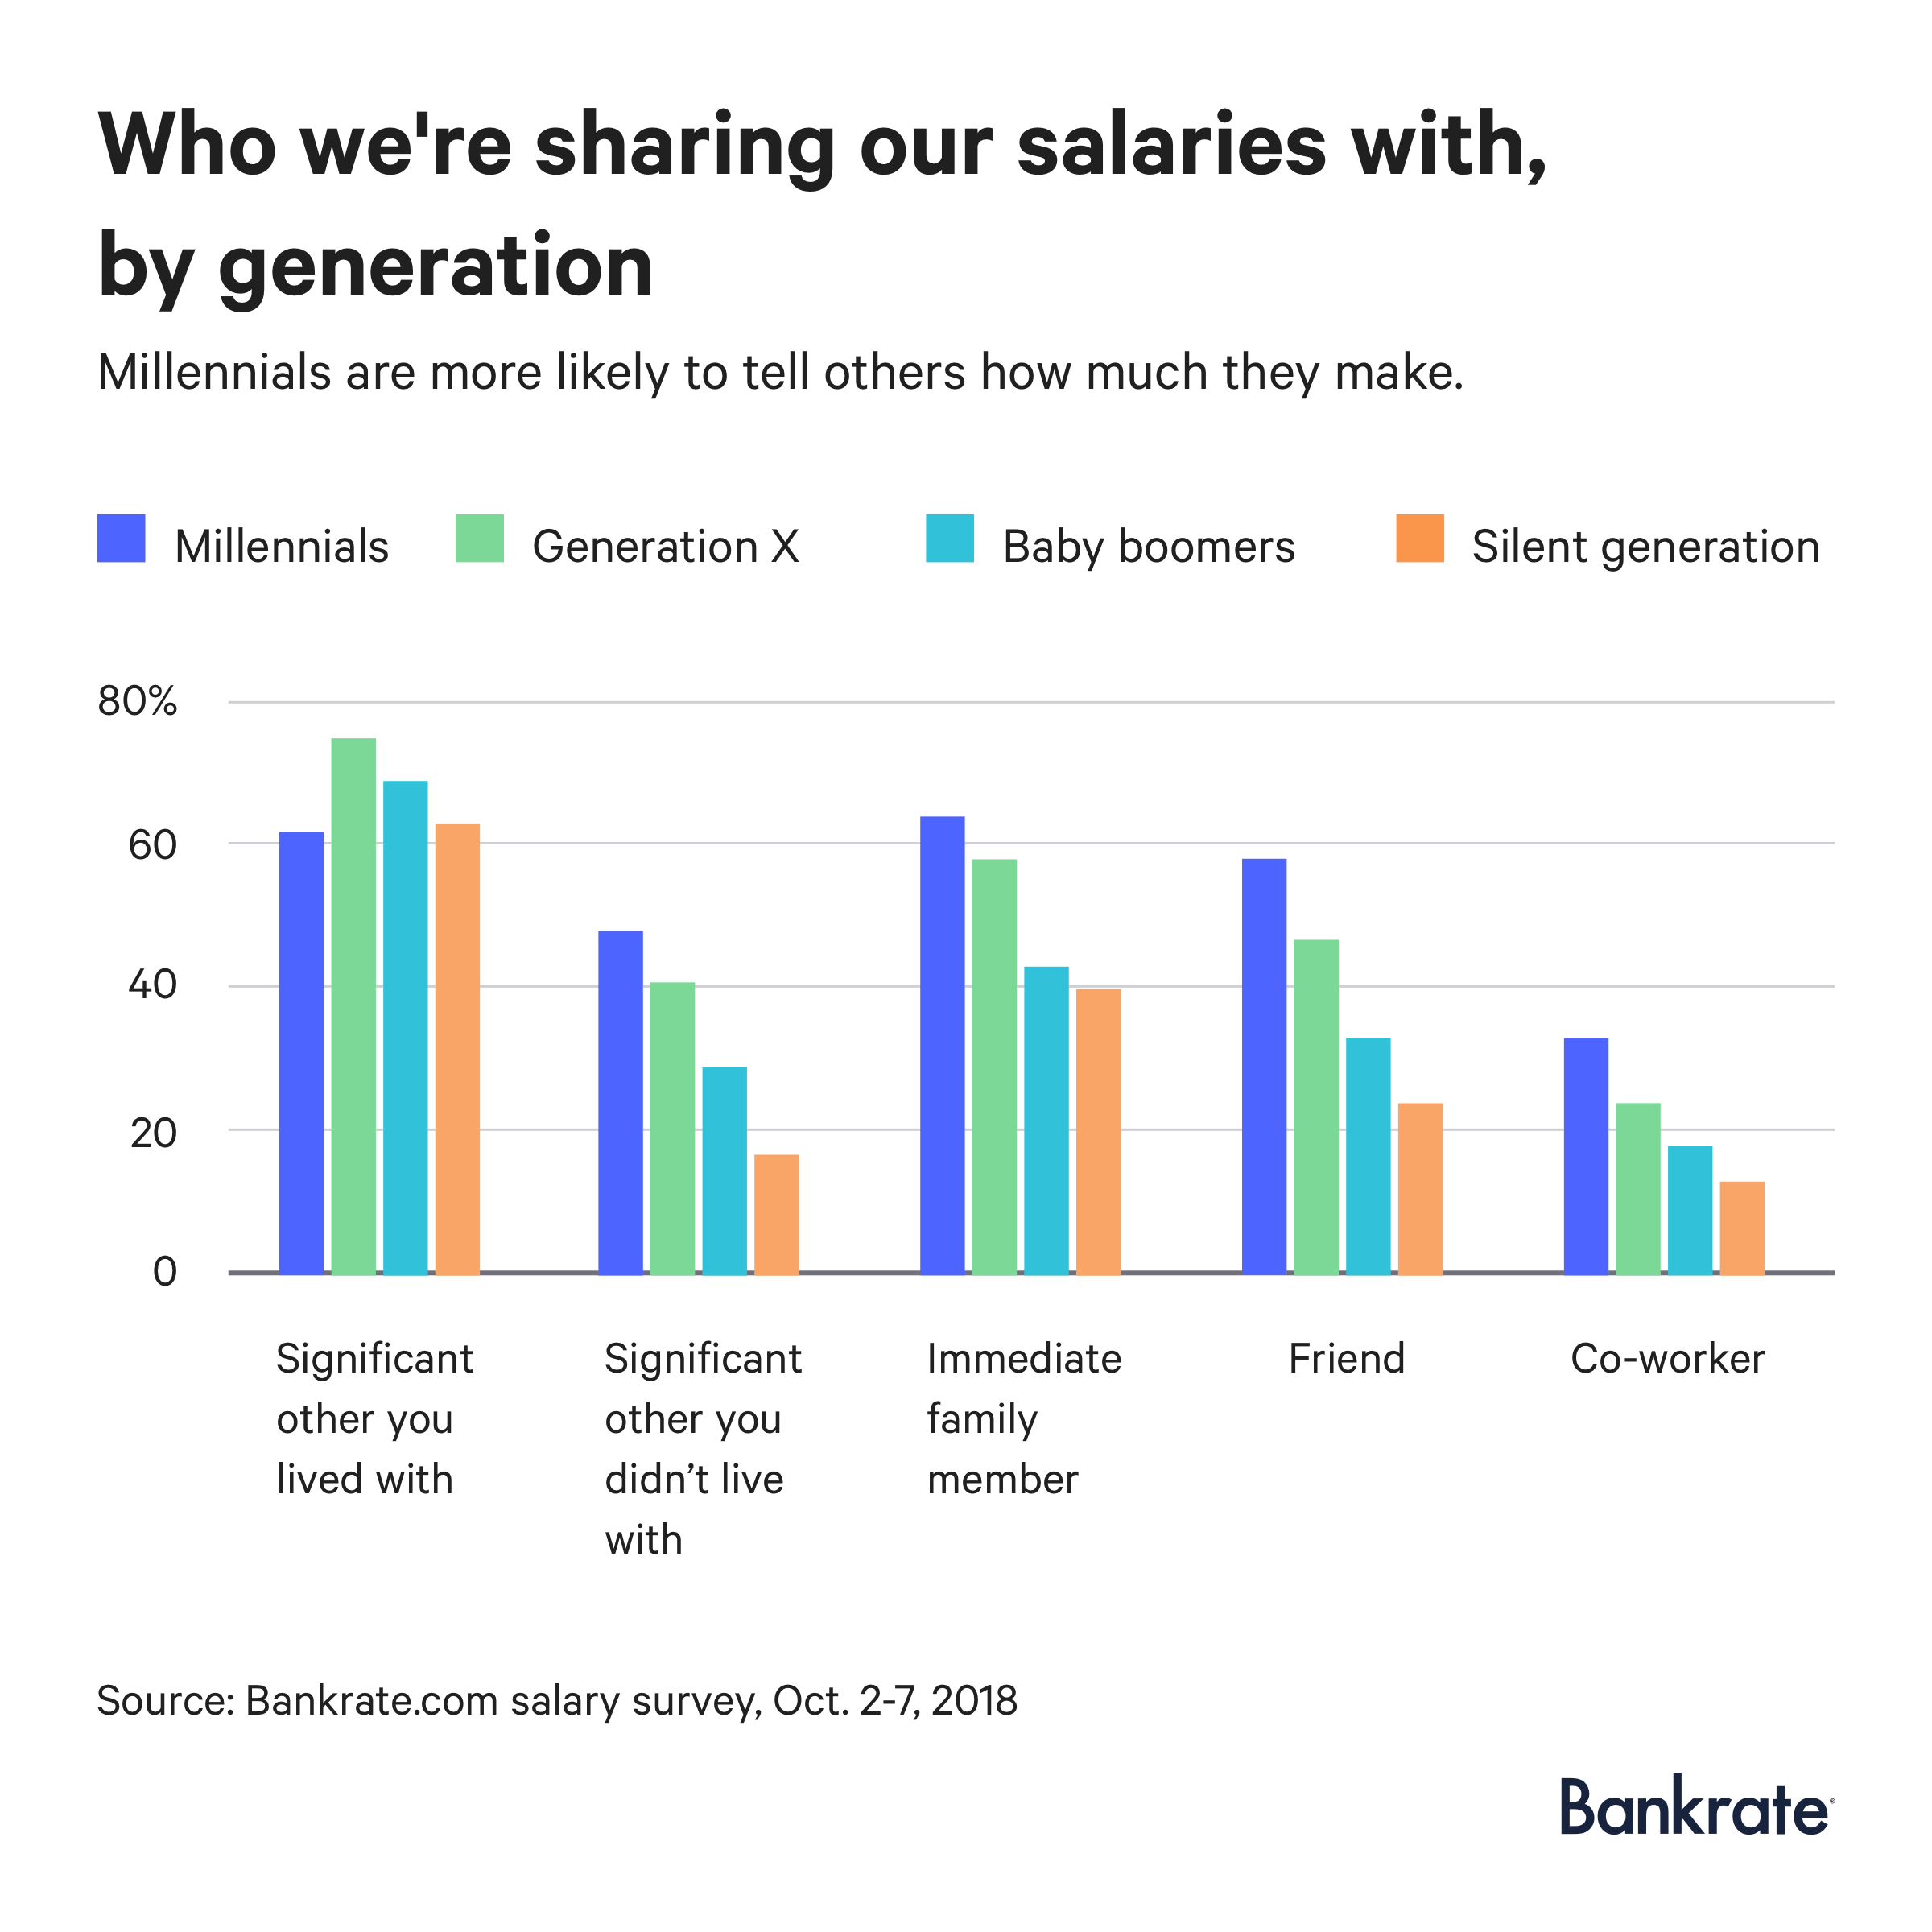 Millennials are more likely to tell others how much they make